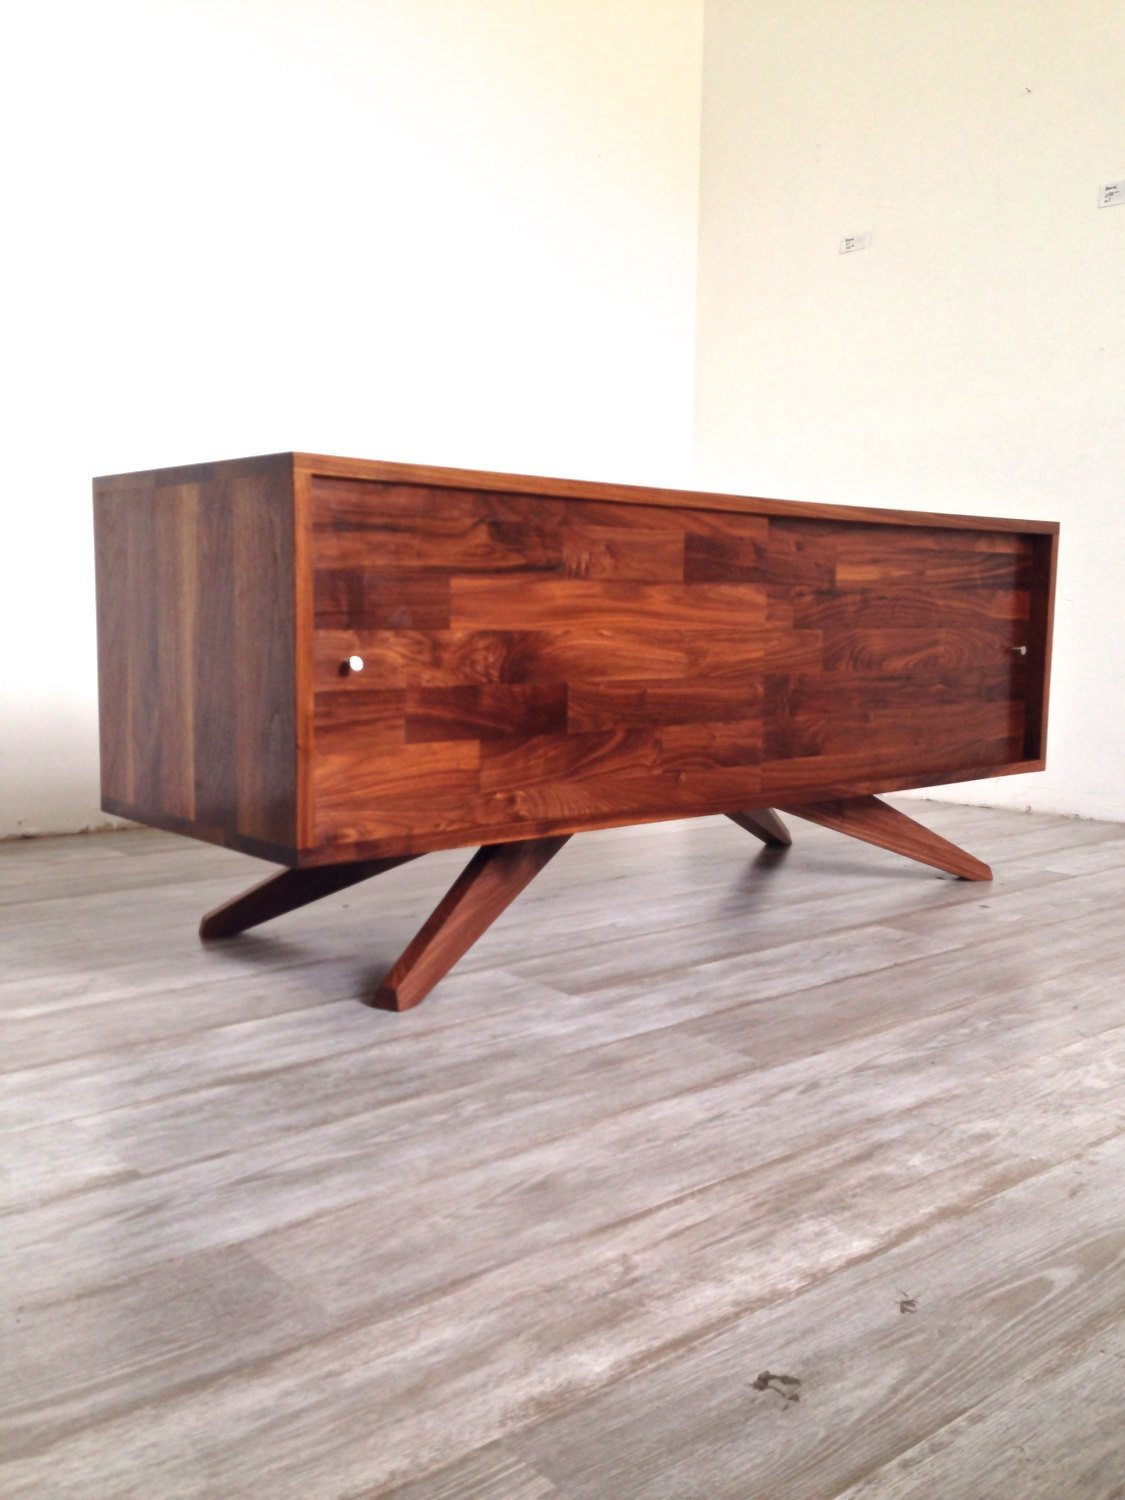 Divisadero Media Storage Console - JeremiahCollection - 2